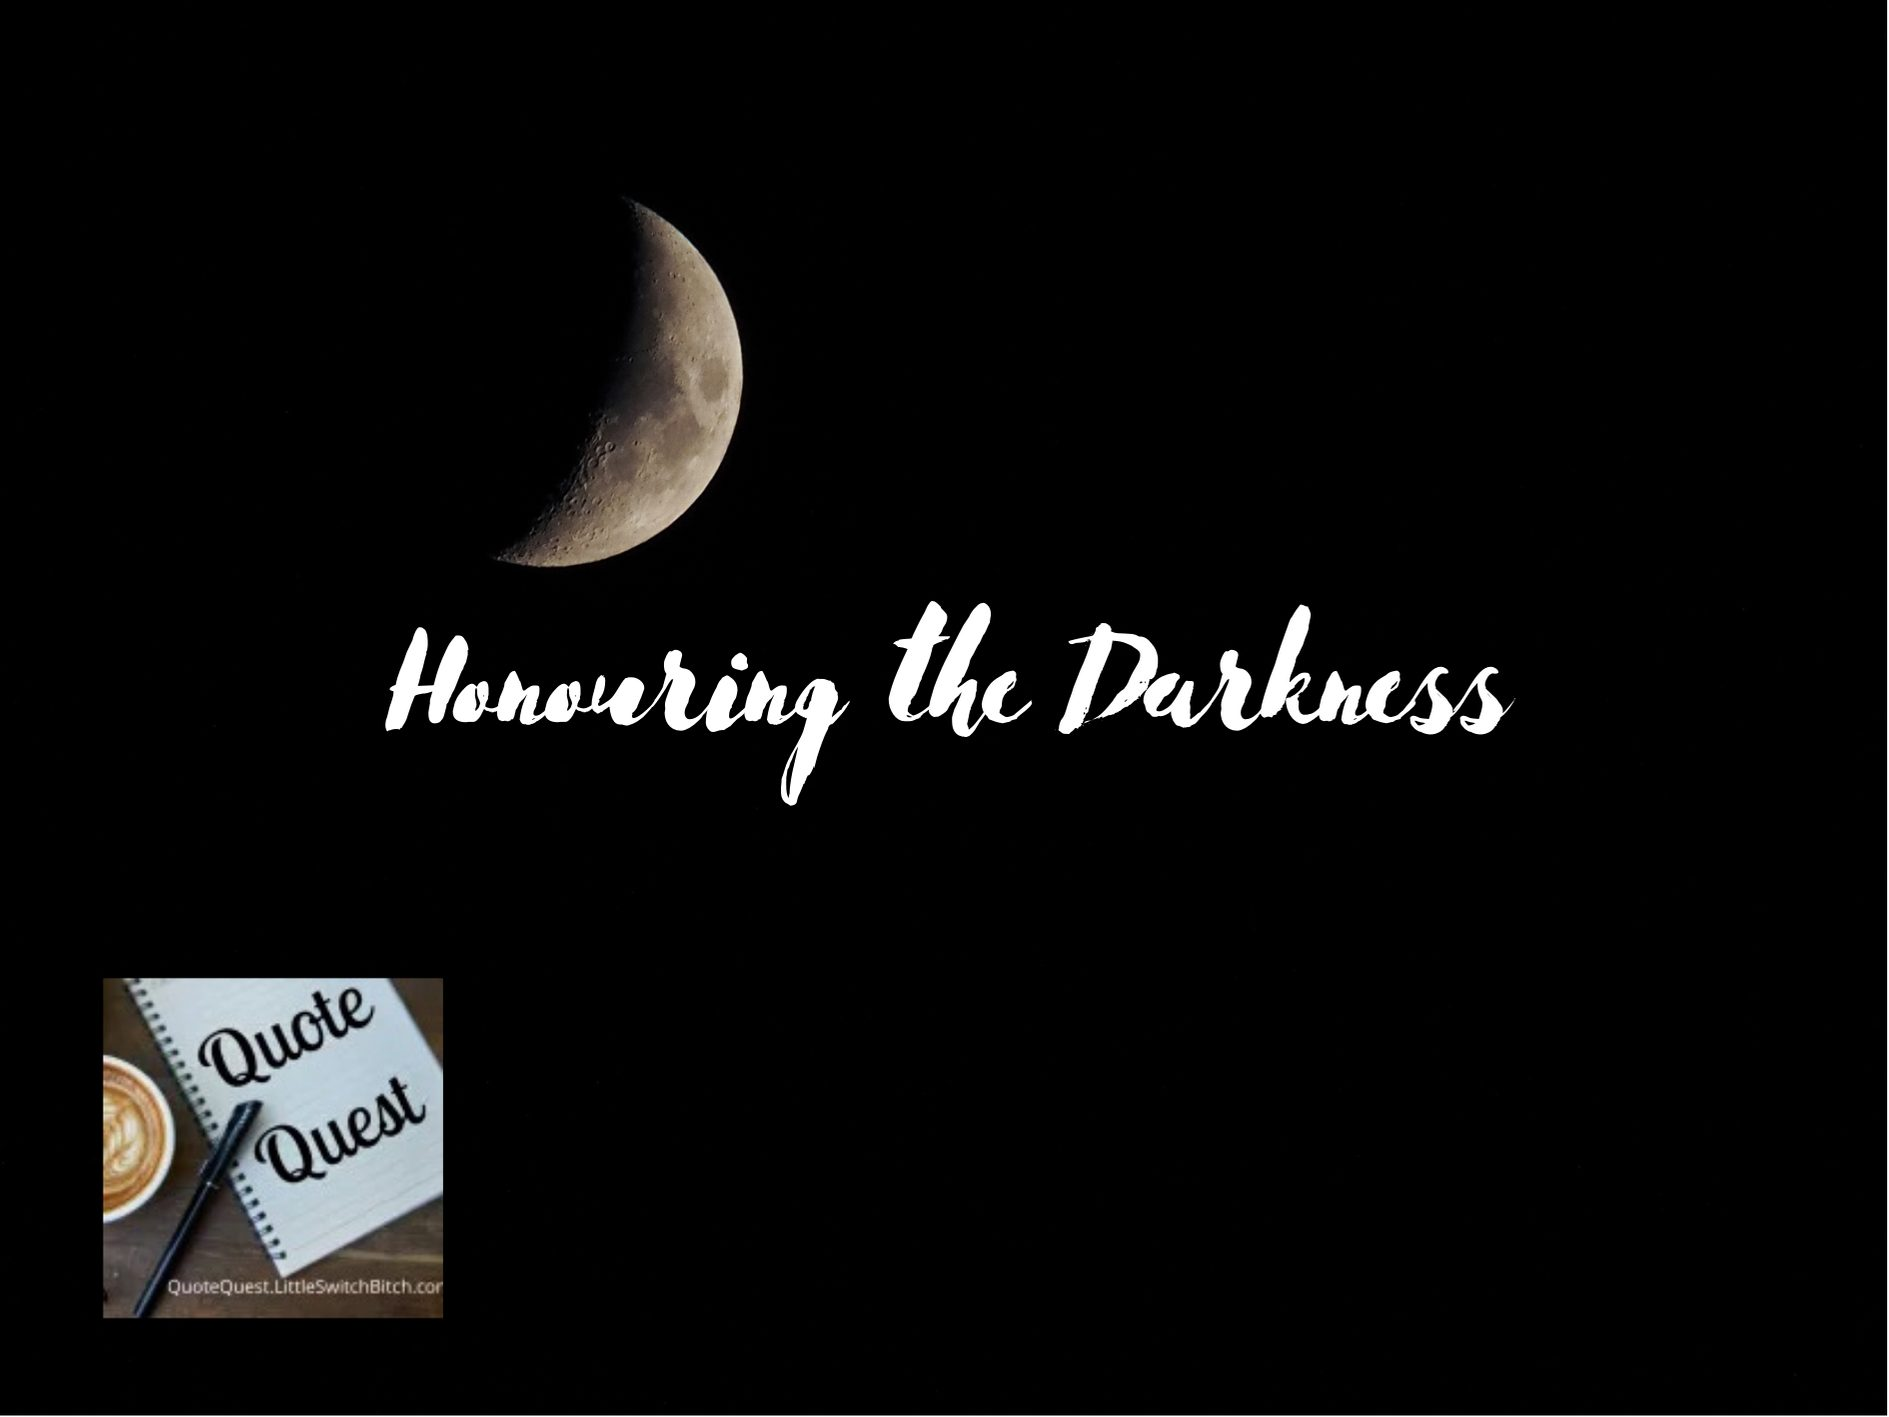 [Quote Quest] Honouring the Darkness